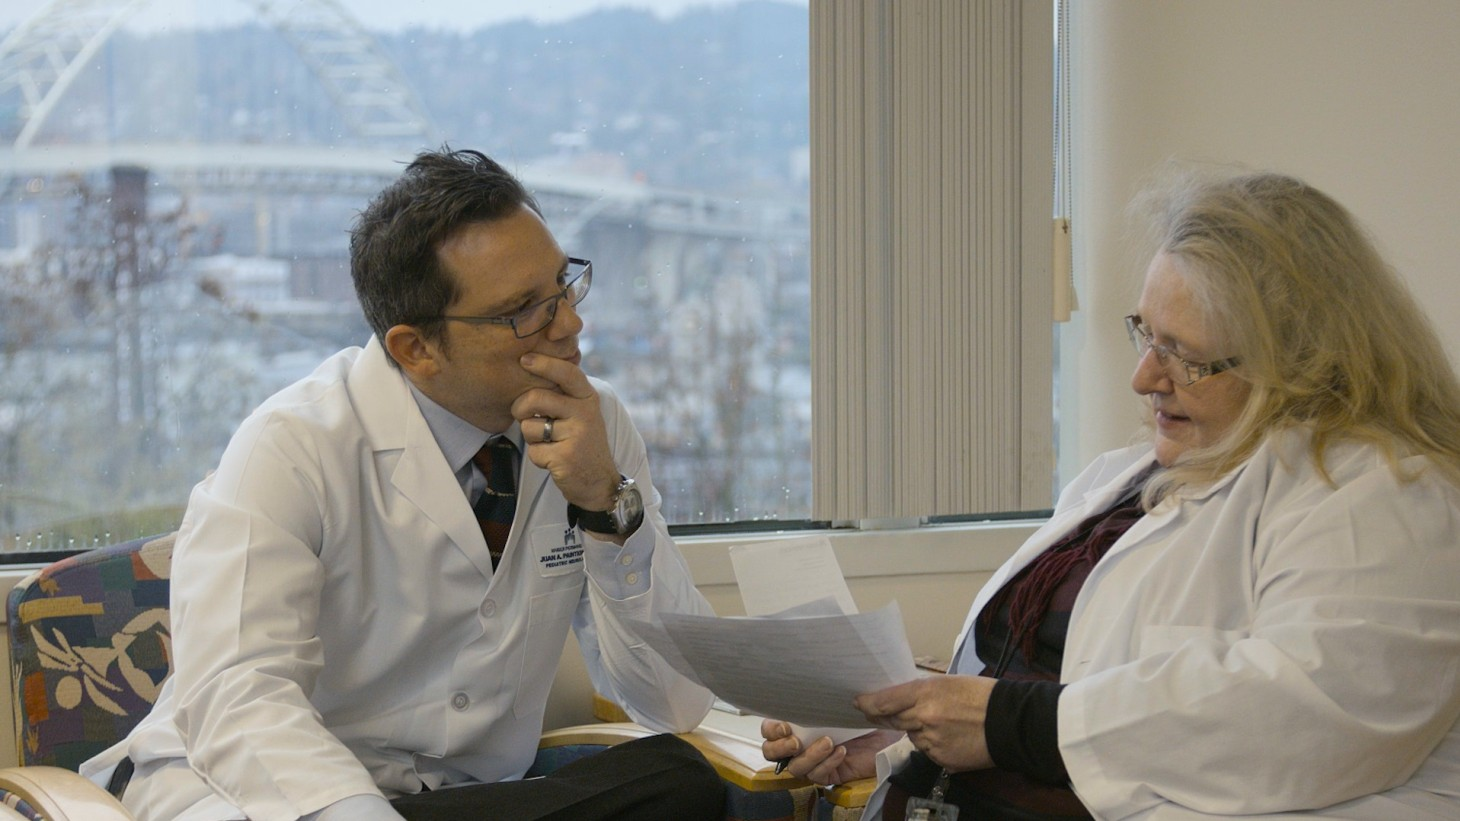 Doctor discussing a case with another health care worker